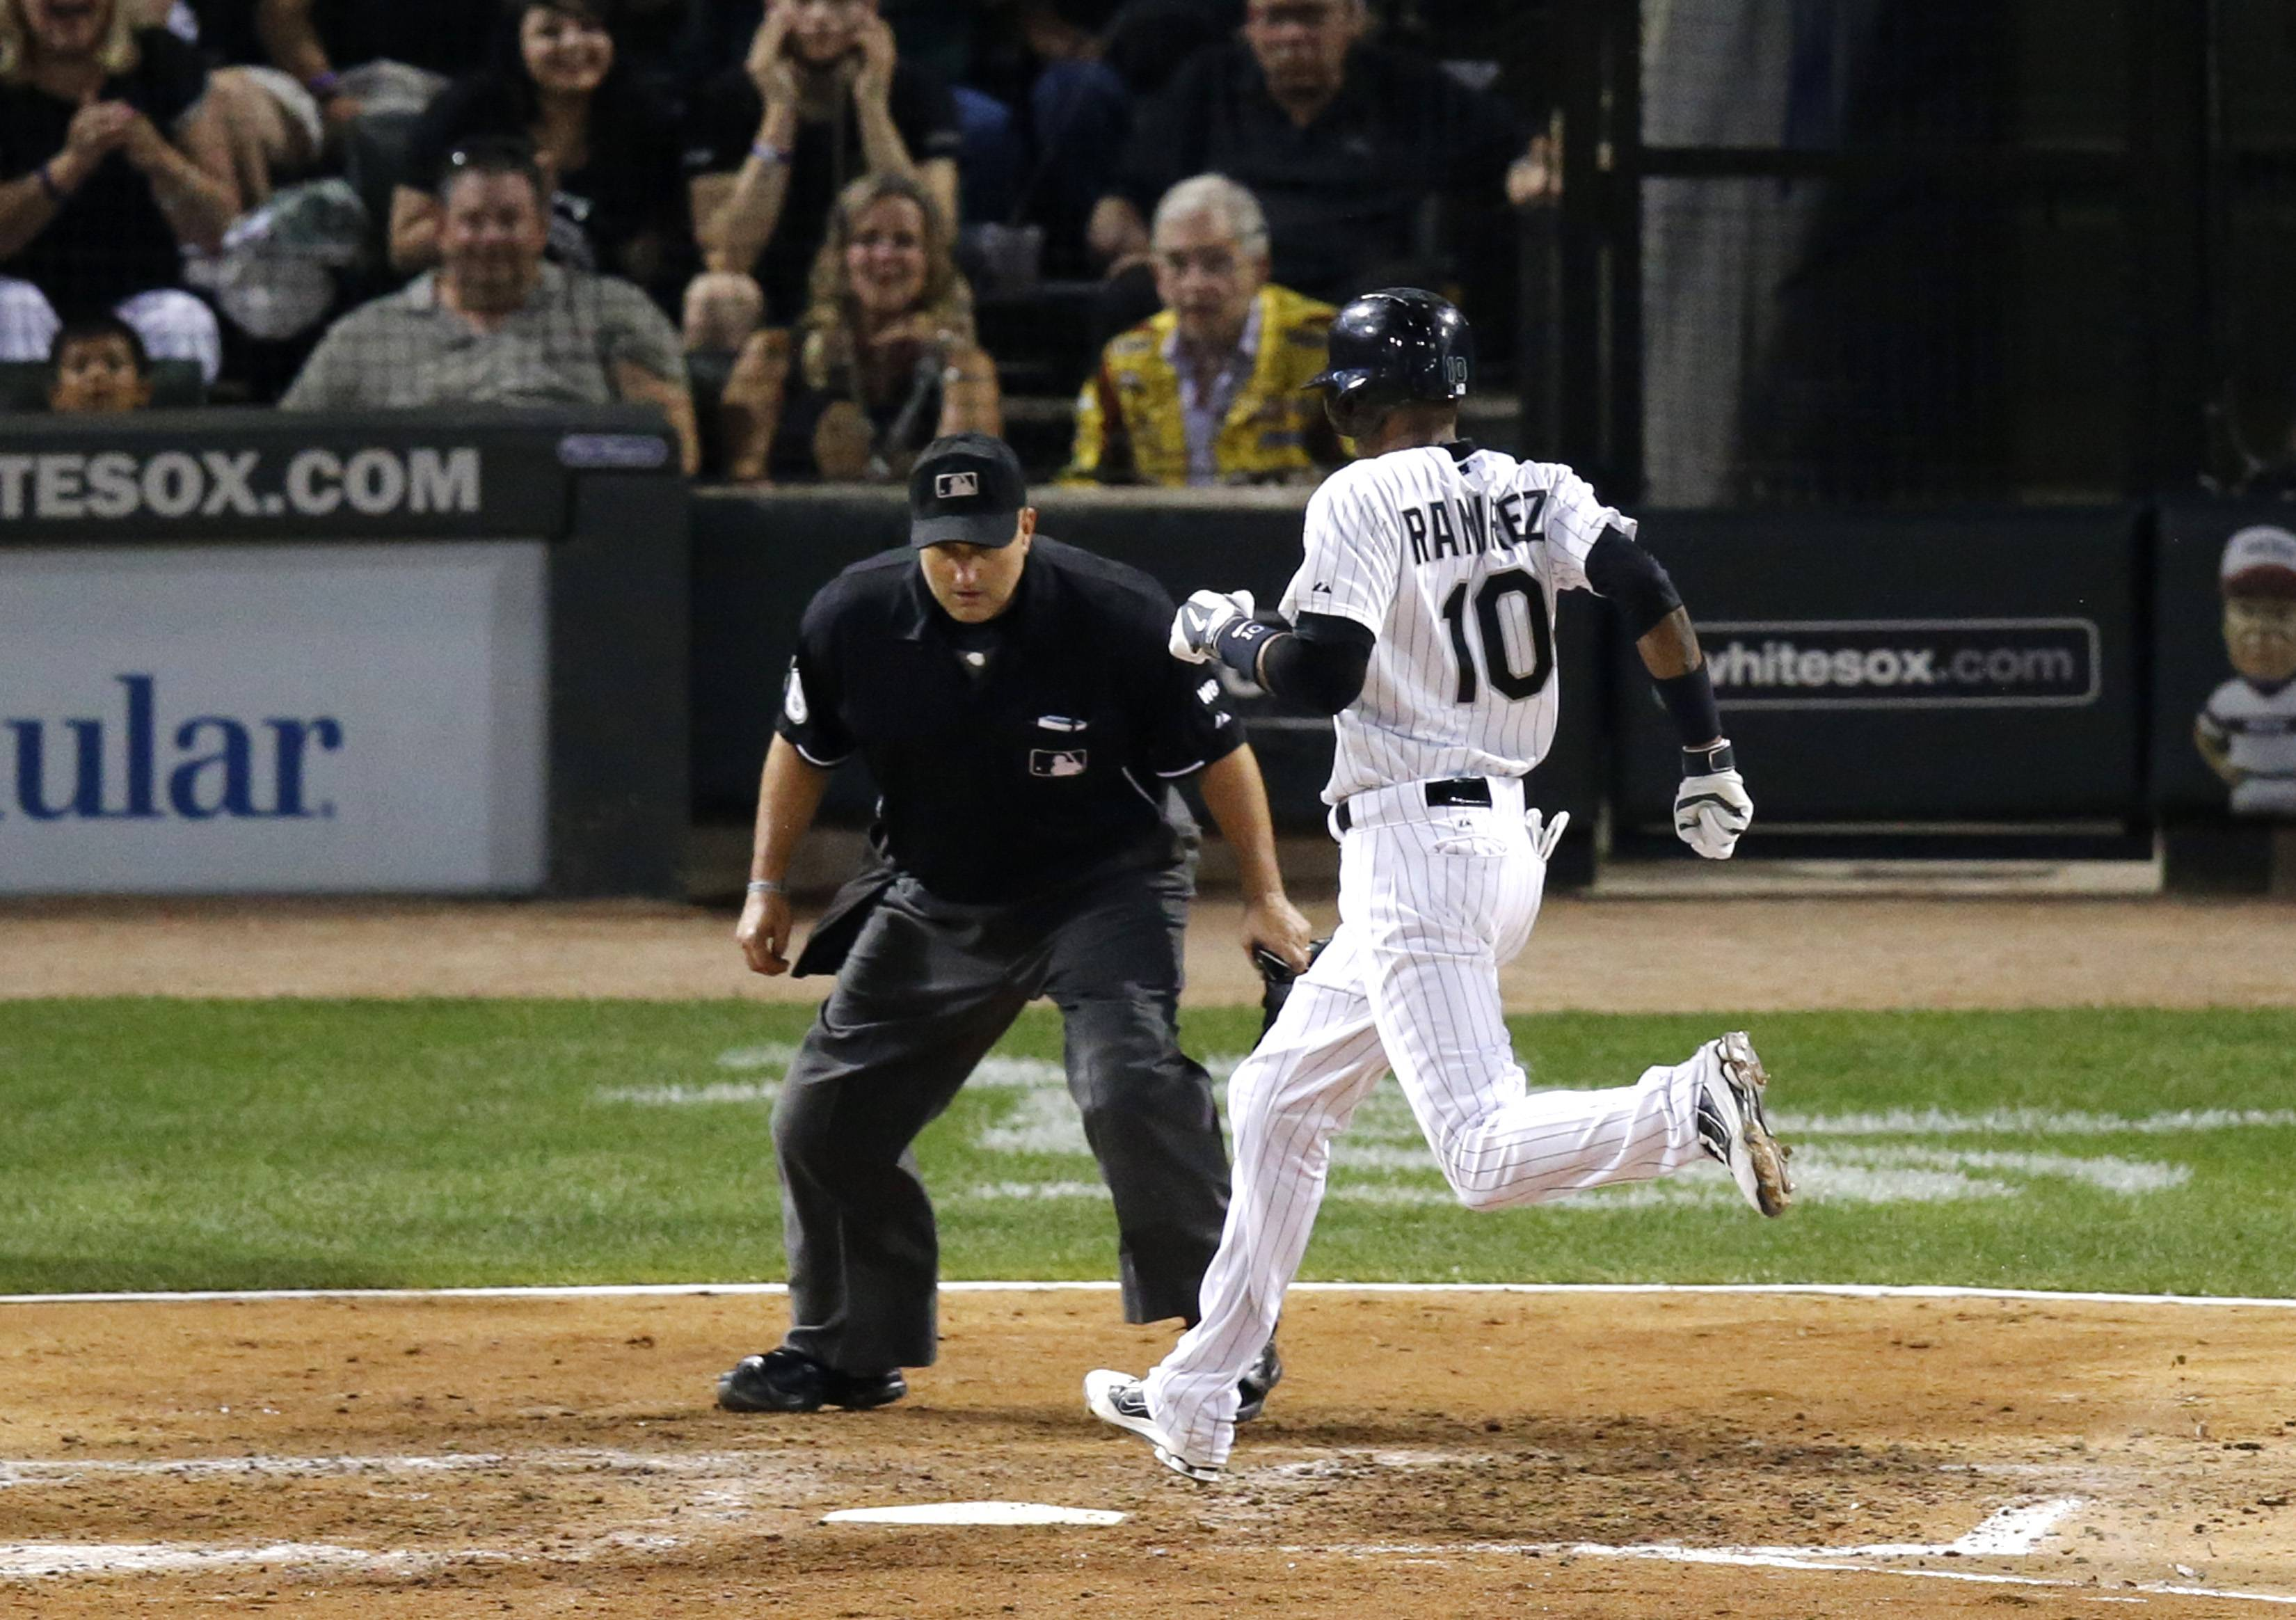 Home plate umpire Eric Cooper watches Chicago White Sox's Alexei Ramirez score on a sacrifice fly by Avisail Garcia, off a pitch from Baltimore Orioles' Wei-Yin Chen during the sixth inning of a baseball game Wednesday in Chicago.